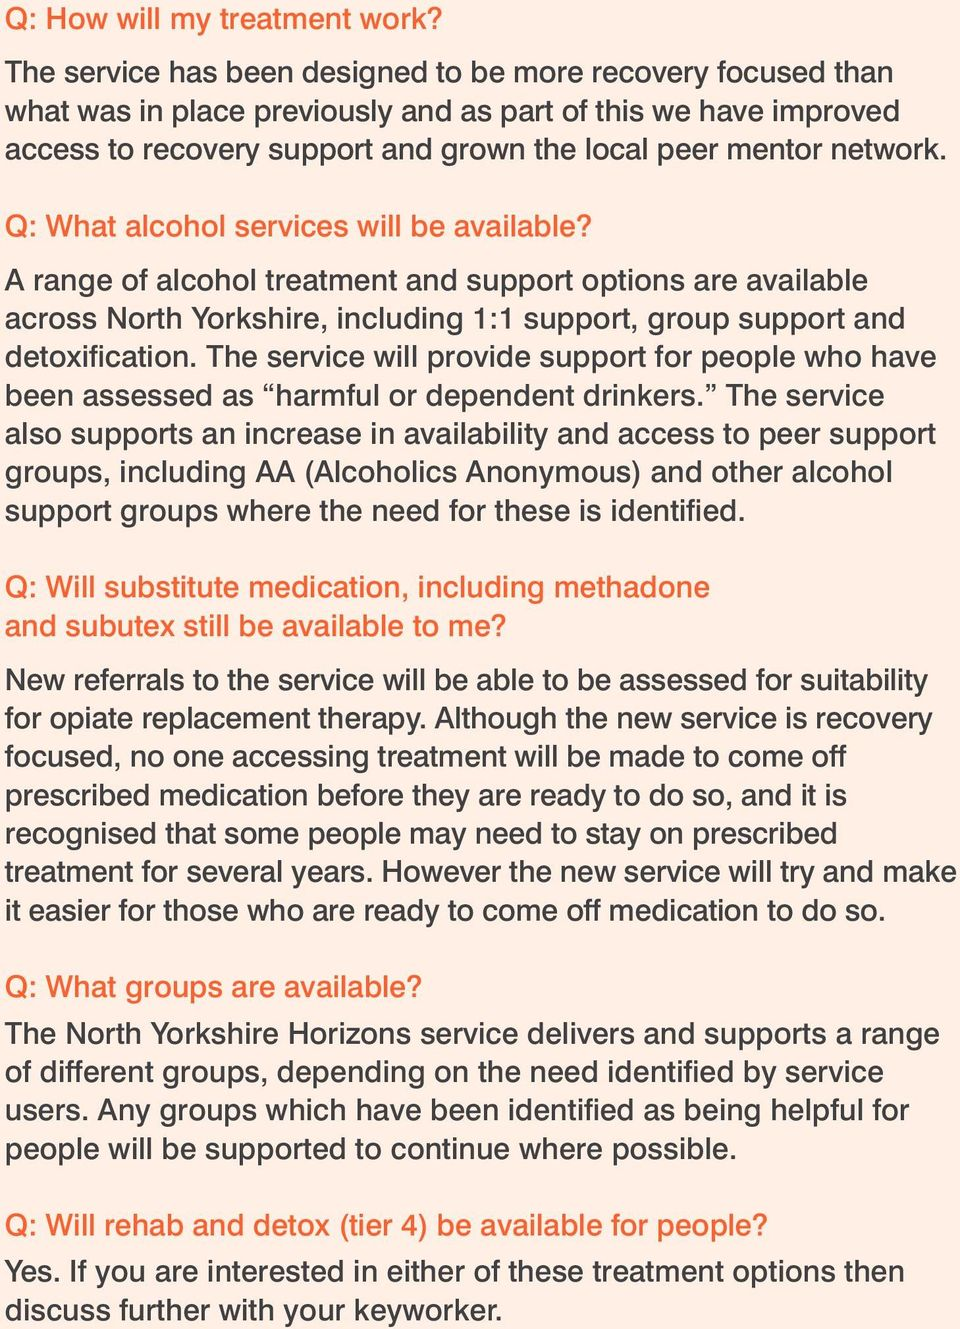 Q: What alcohol services will be available? A range of alcohol treatment and support options are available across North Yorkshire, including 1:1 support, group support and detoxification.